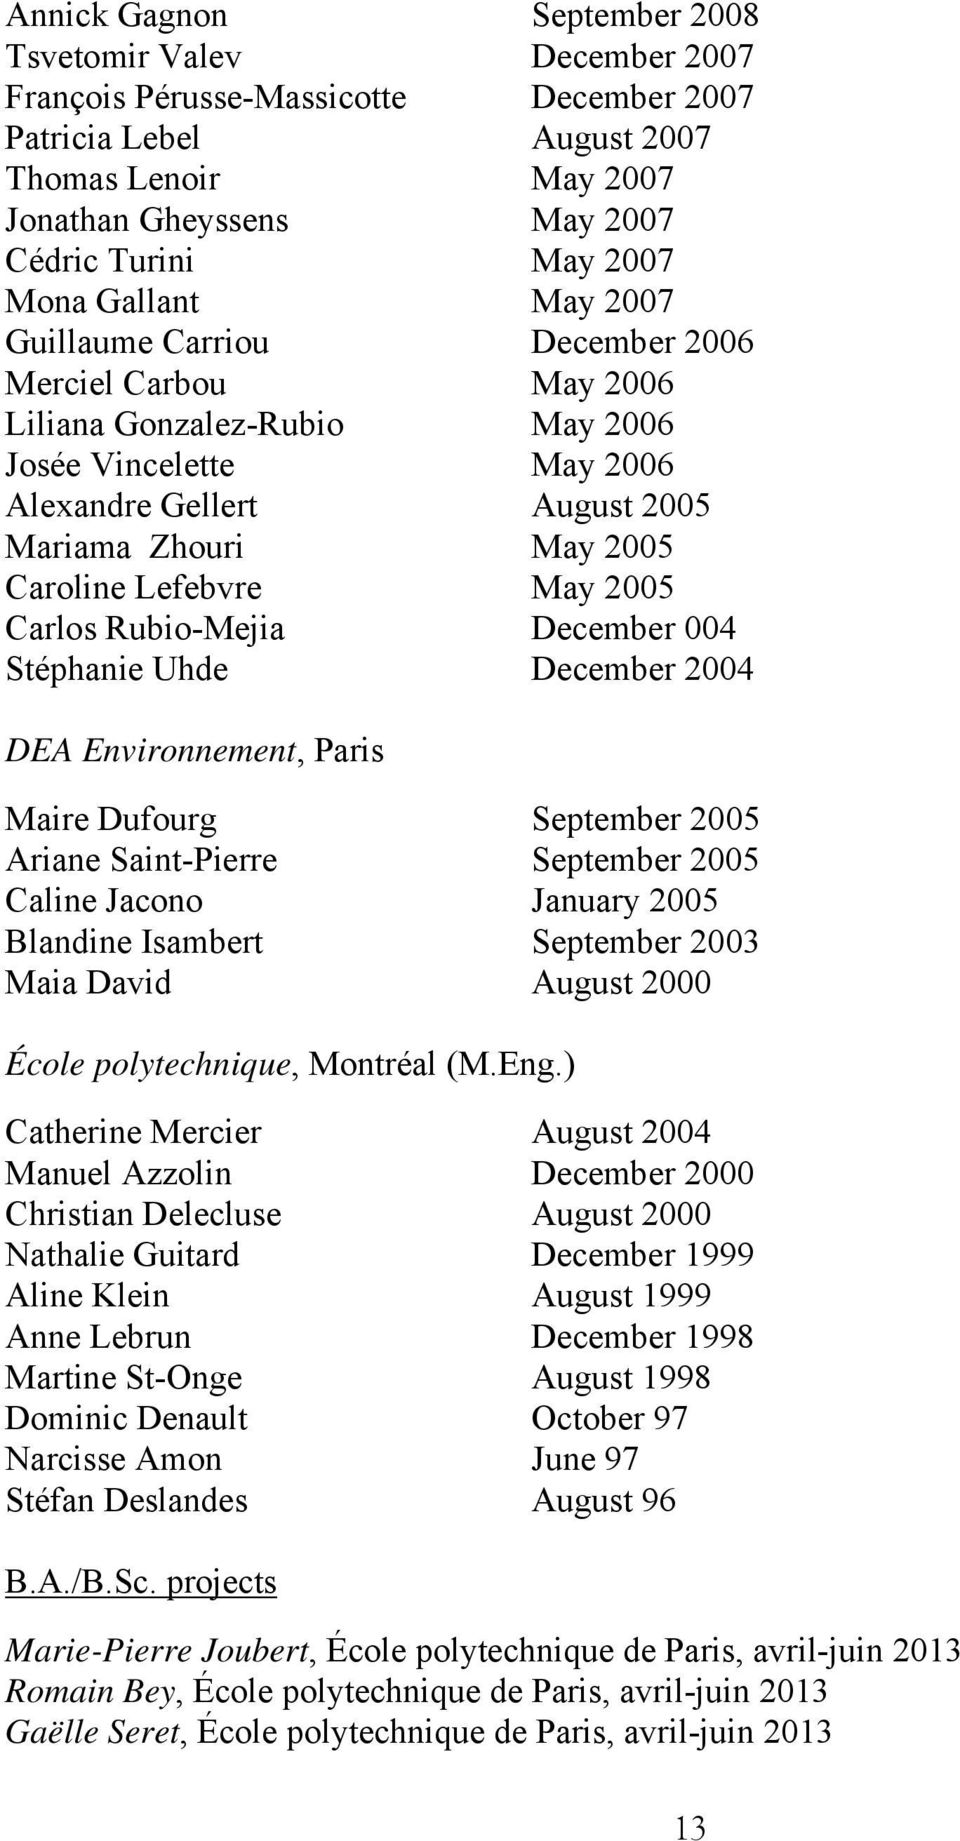 Caroline Lefebvre May 2005 Carlos Rubio-Mejia December 004 Stéphanie Uhde December 2004 DEA Environnement, Paris Maire Dufourg September 2005 Ariane Saint-Pierre September 2005 Caline Jacono January